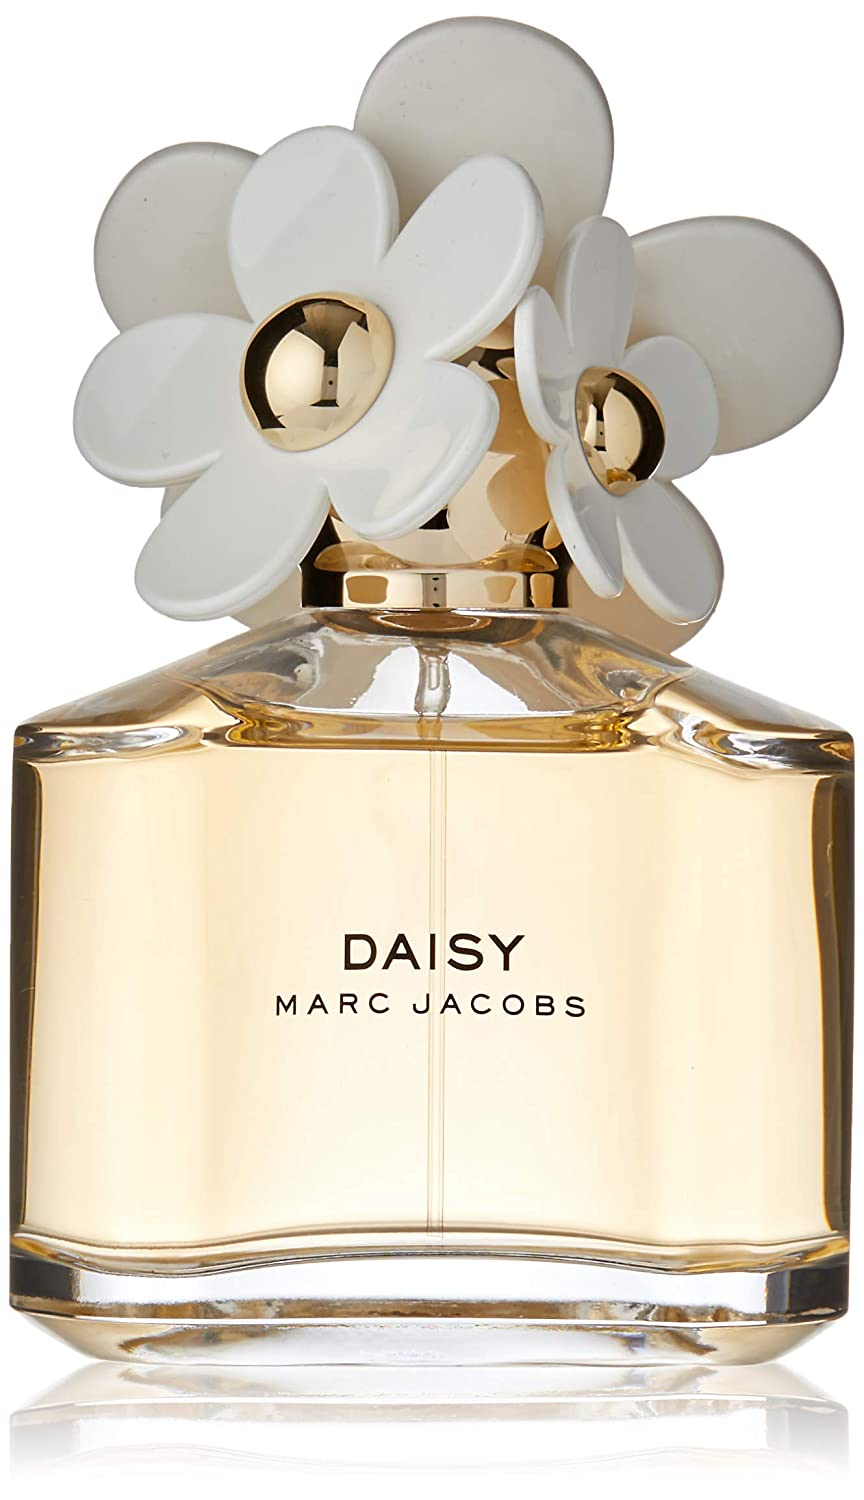 Marc Jacobs Daisy, EDT Spray, 3.4 Fl Oz